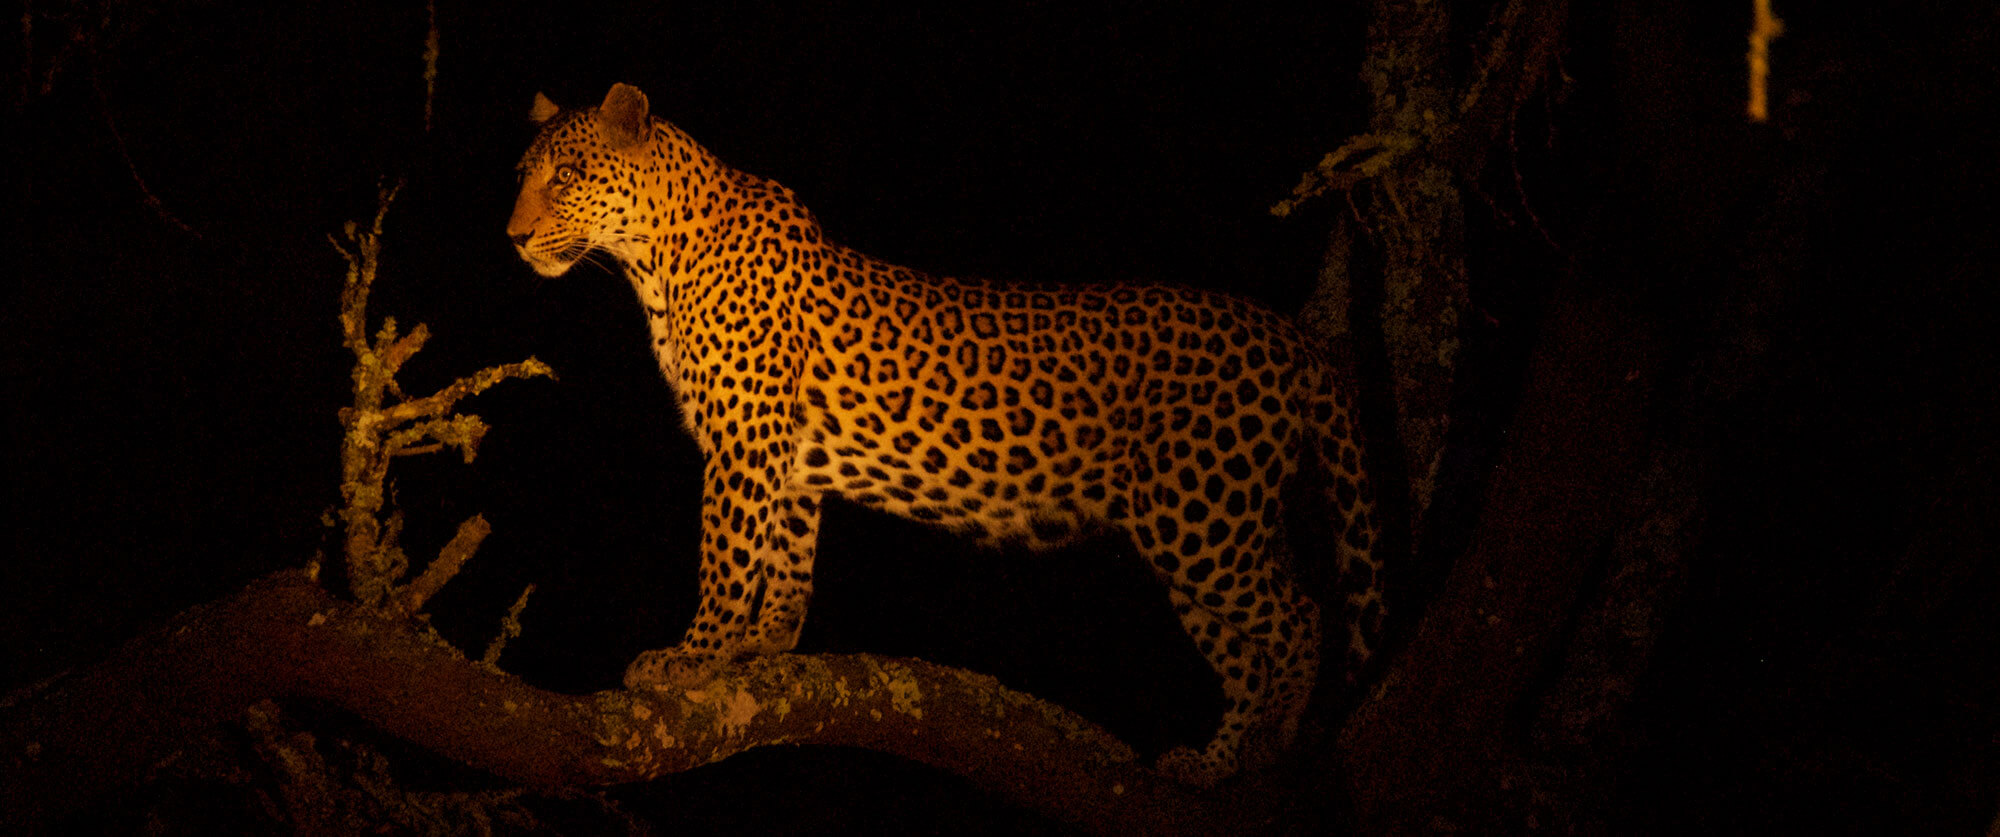 Leopard at Night - Lake Mburo Safari Uganda - Ugandan Adventure: Gorilla Safari Tour